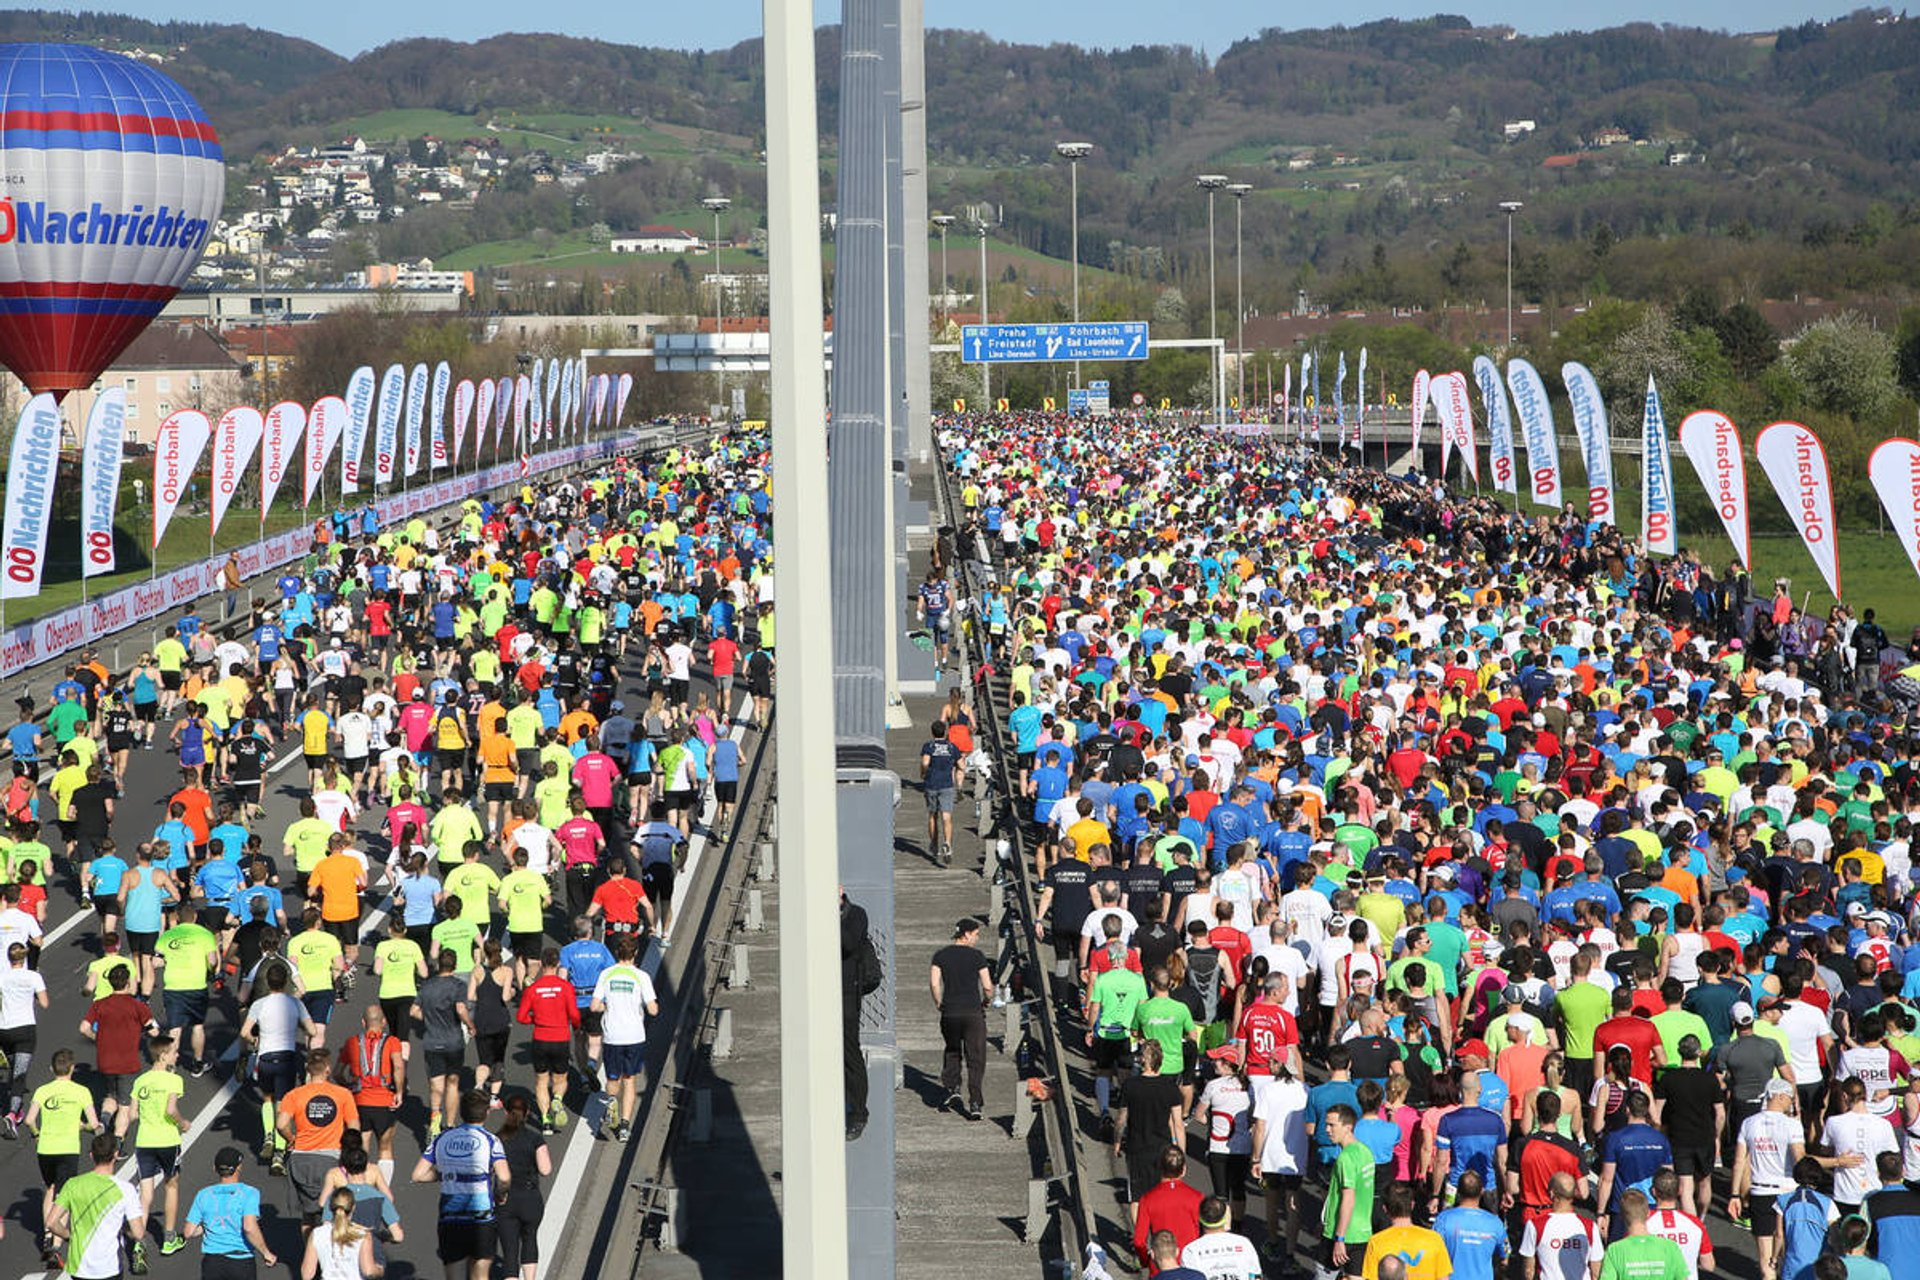 Linz Marathon in Austria - Best Season 2020